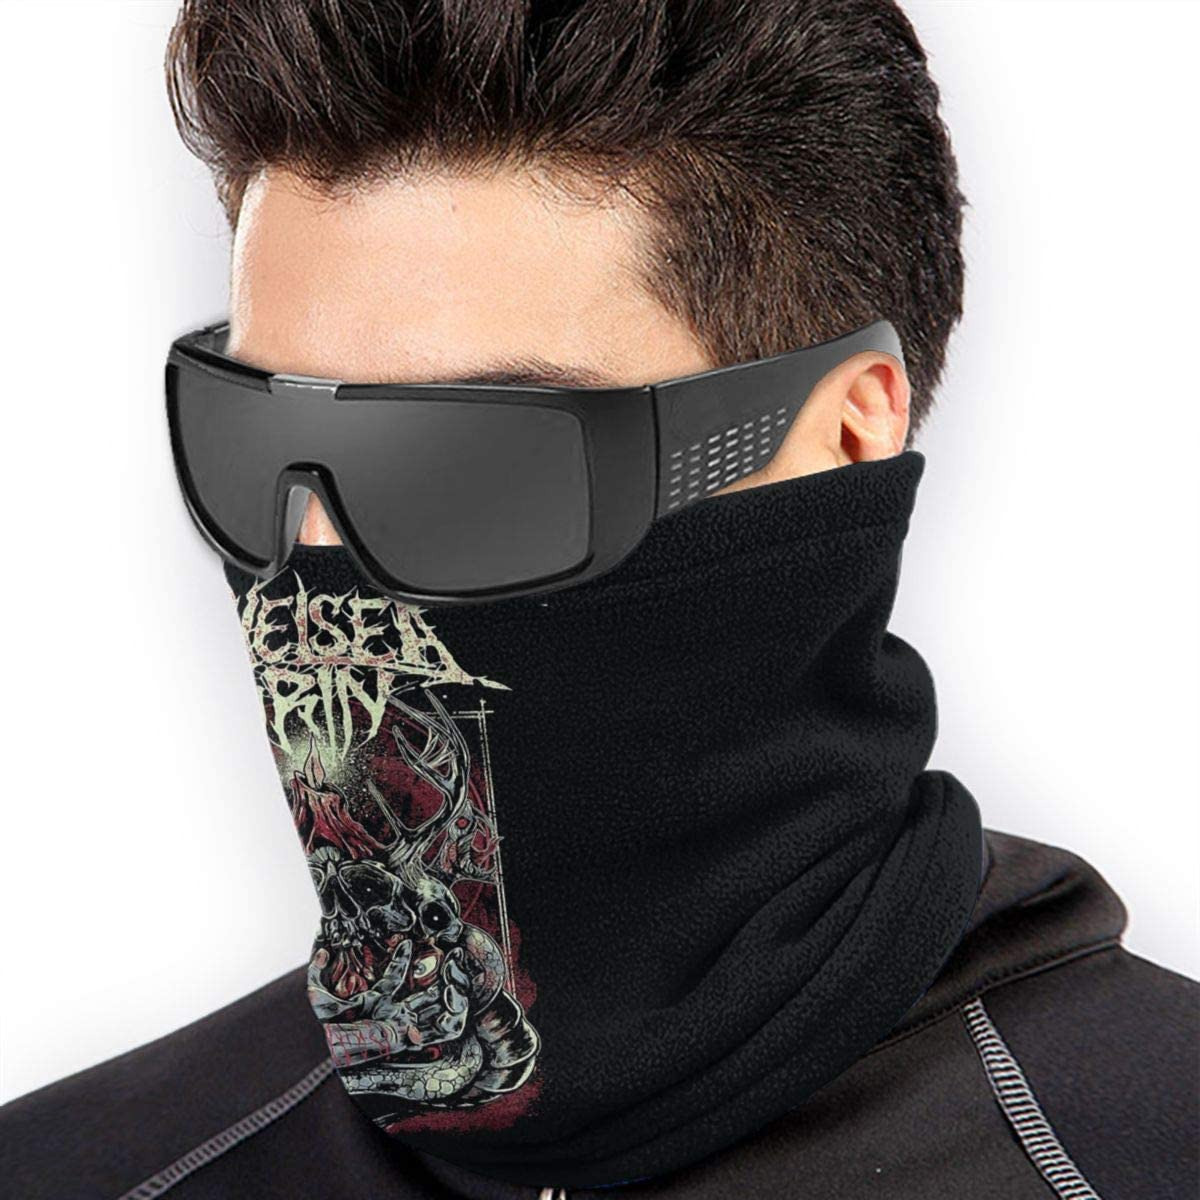 Chelsea Grin Outdoor Mouth Mask Windproof Sports Face Mask Dust Shield Scarf Men Woman Neck Warmer